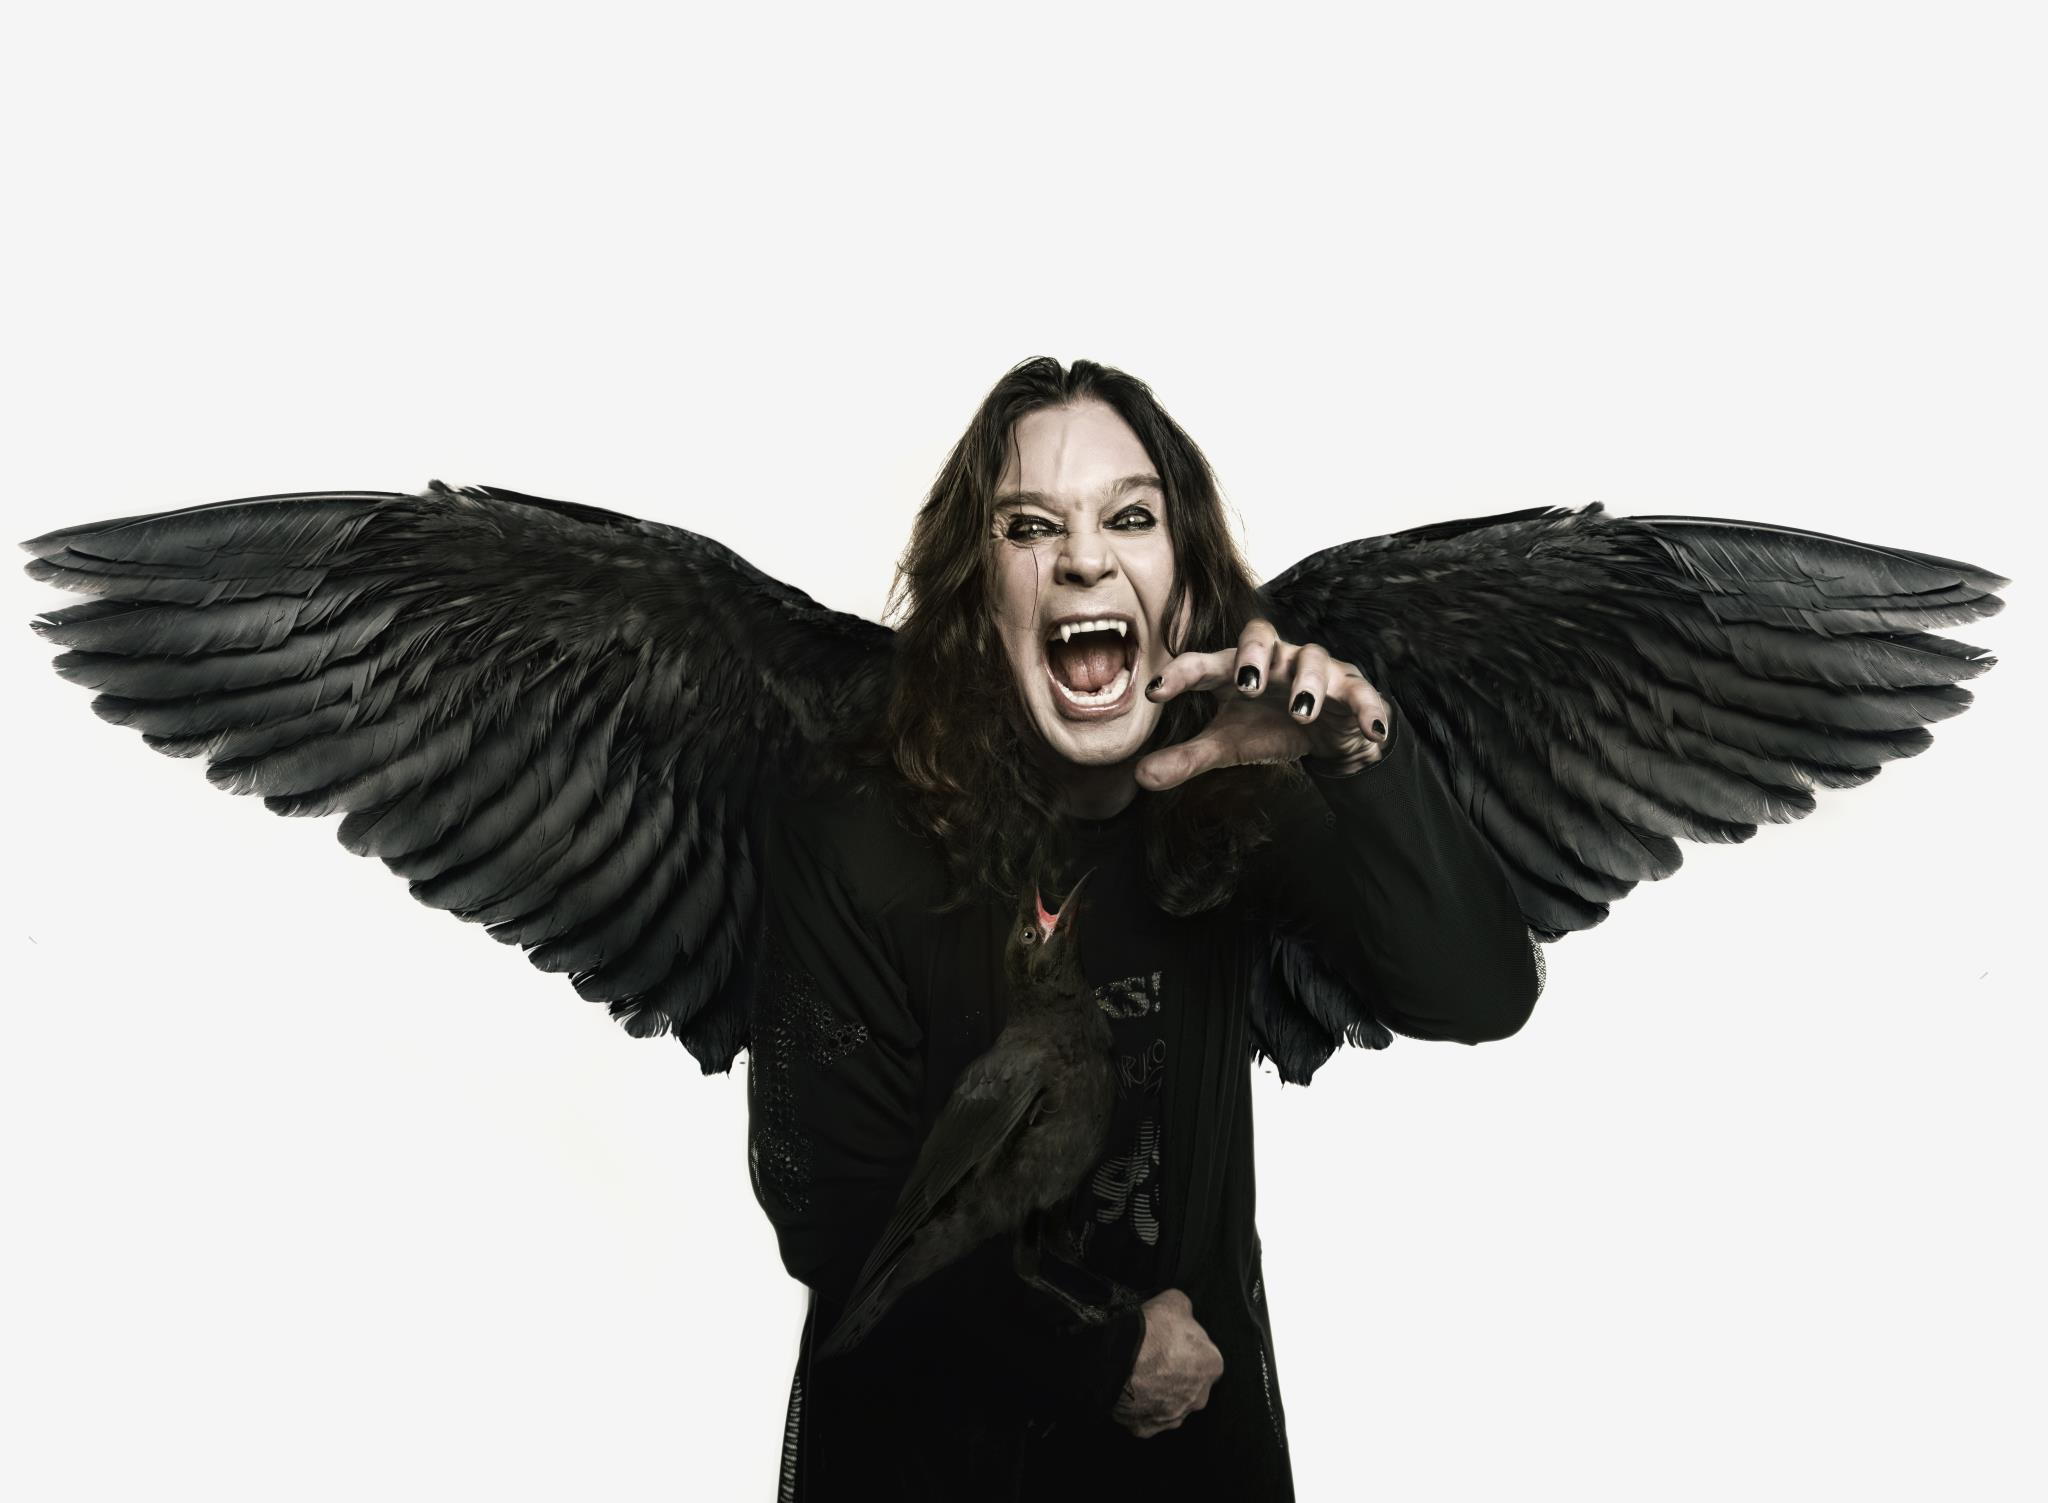 ozzy osbourne wallpapers images photos pictures backgrounds